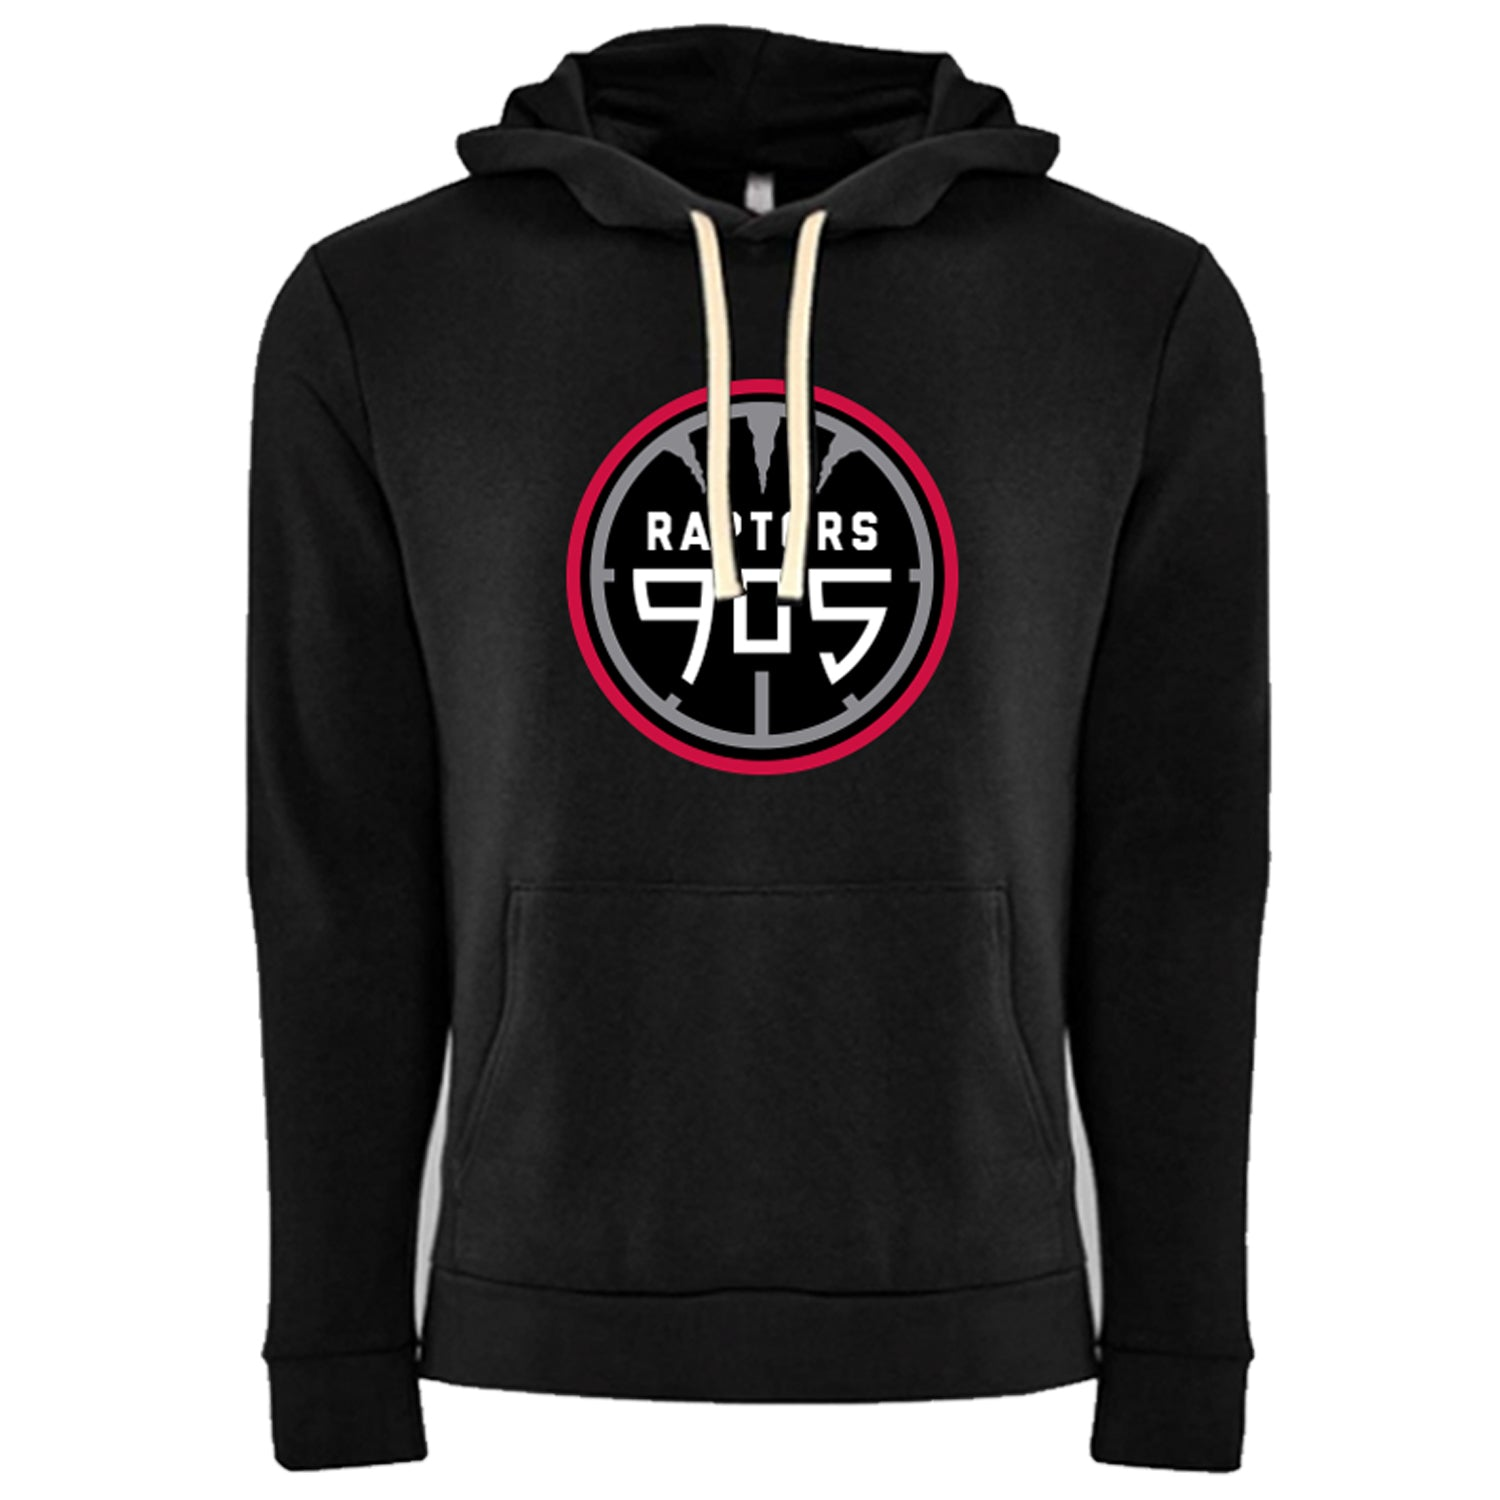 Raptors 905 Men's Logo Hoody